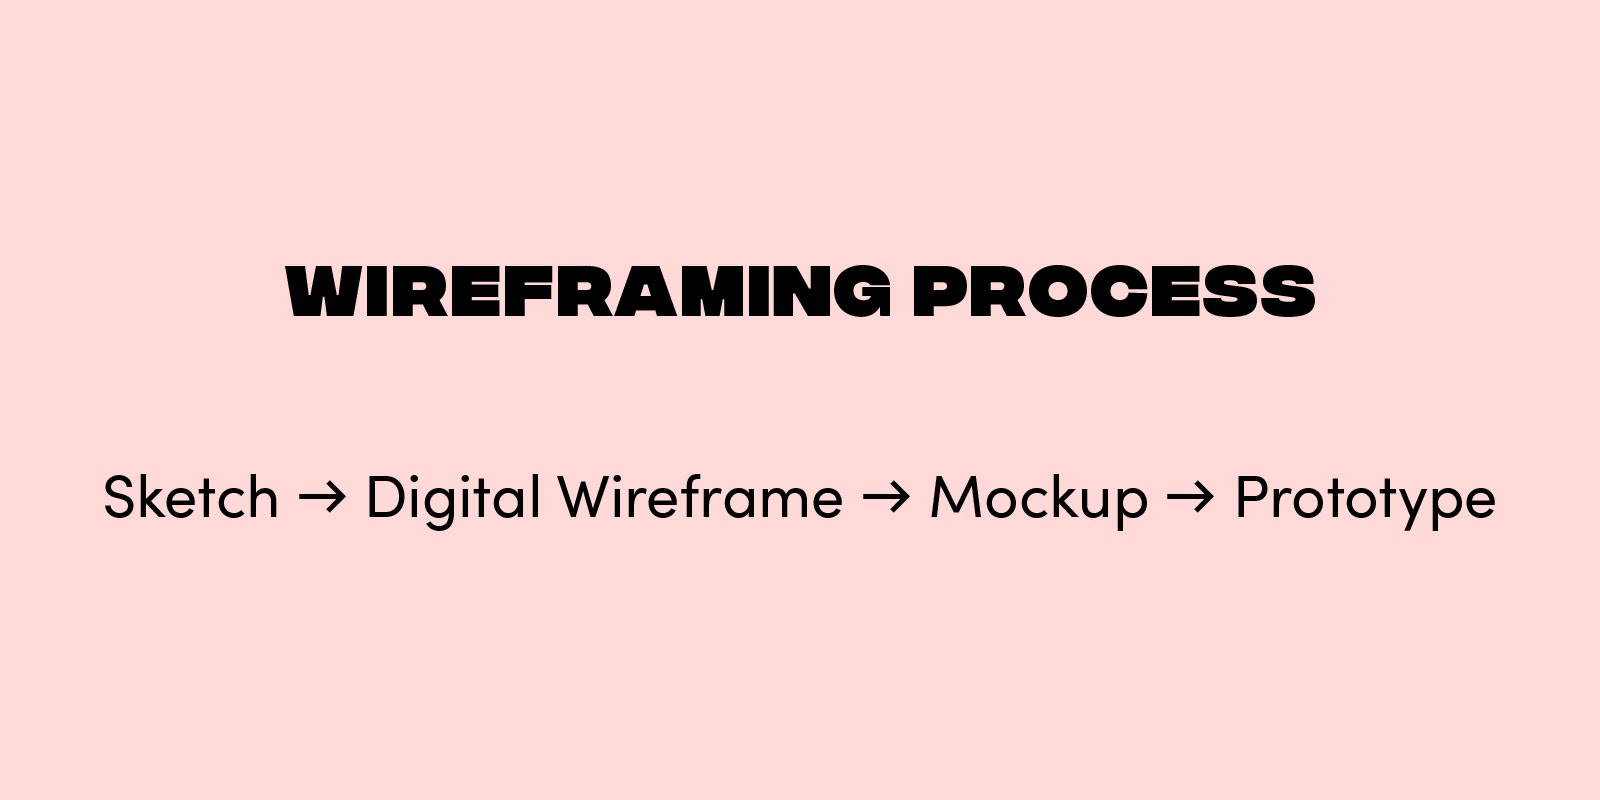 Summary of the wireframing process